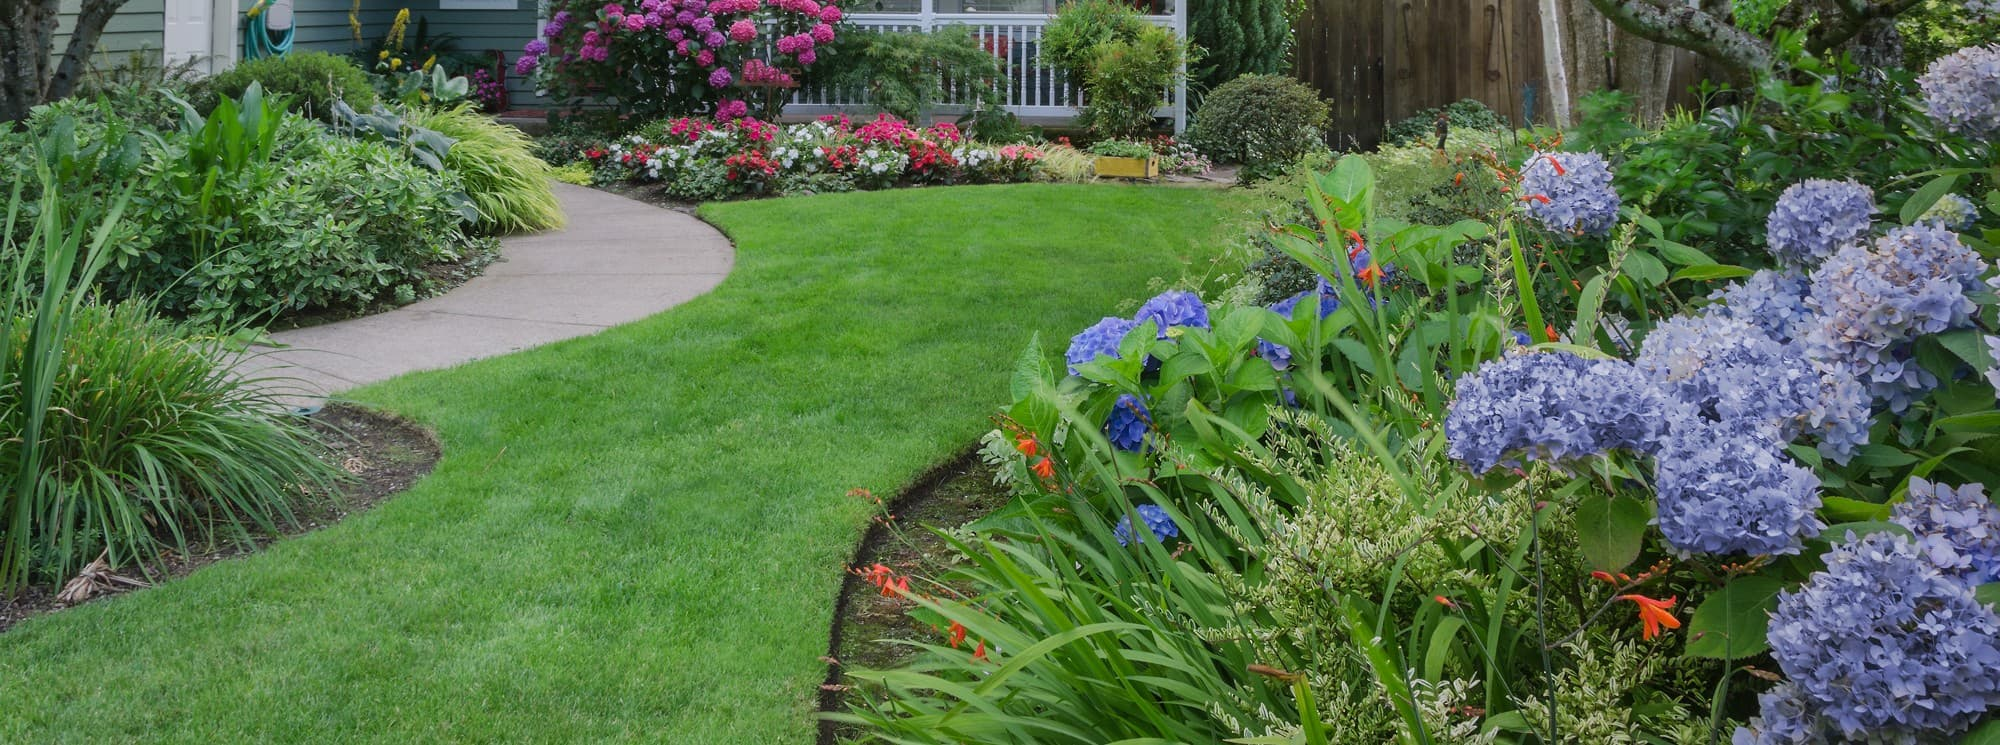 Beautifully Manicured Lawn, Path, and Flower Beds